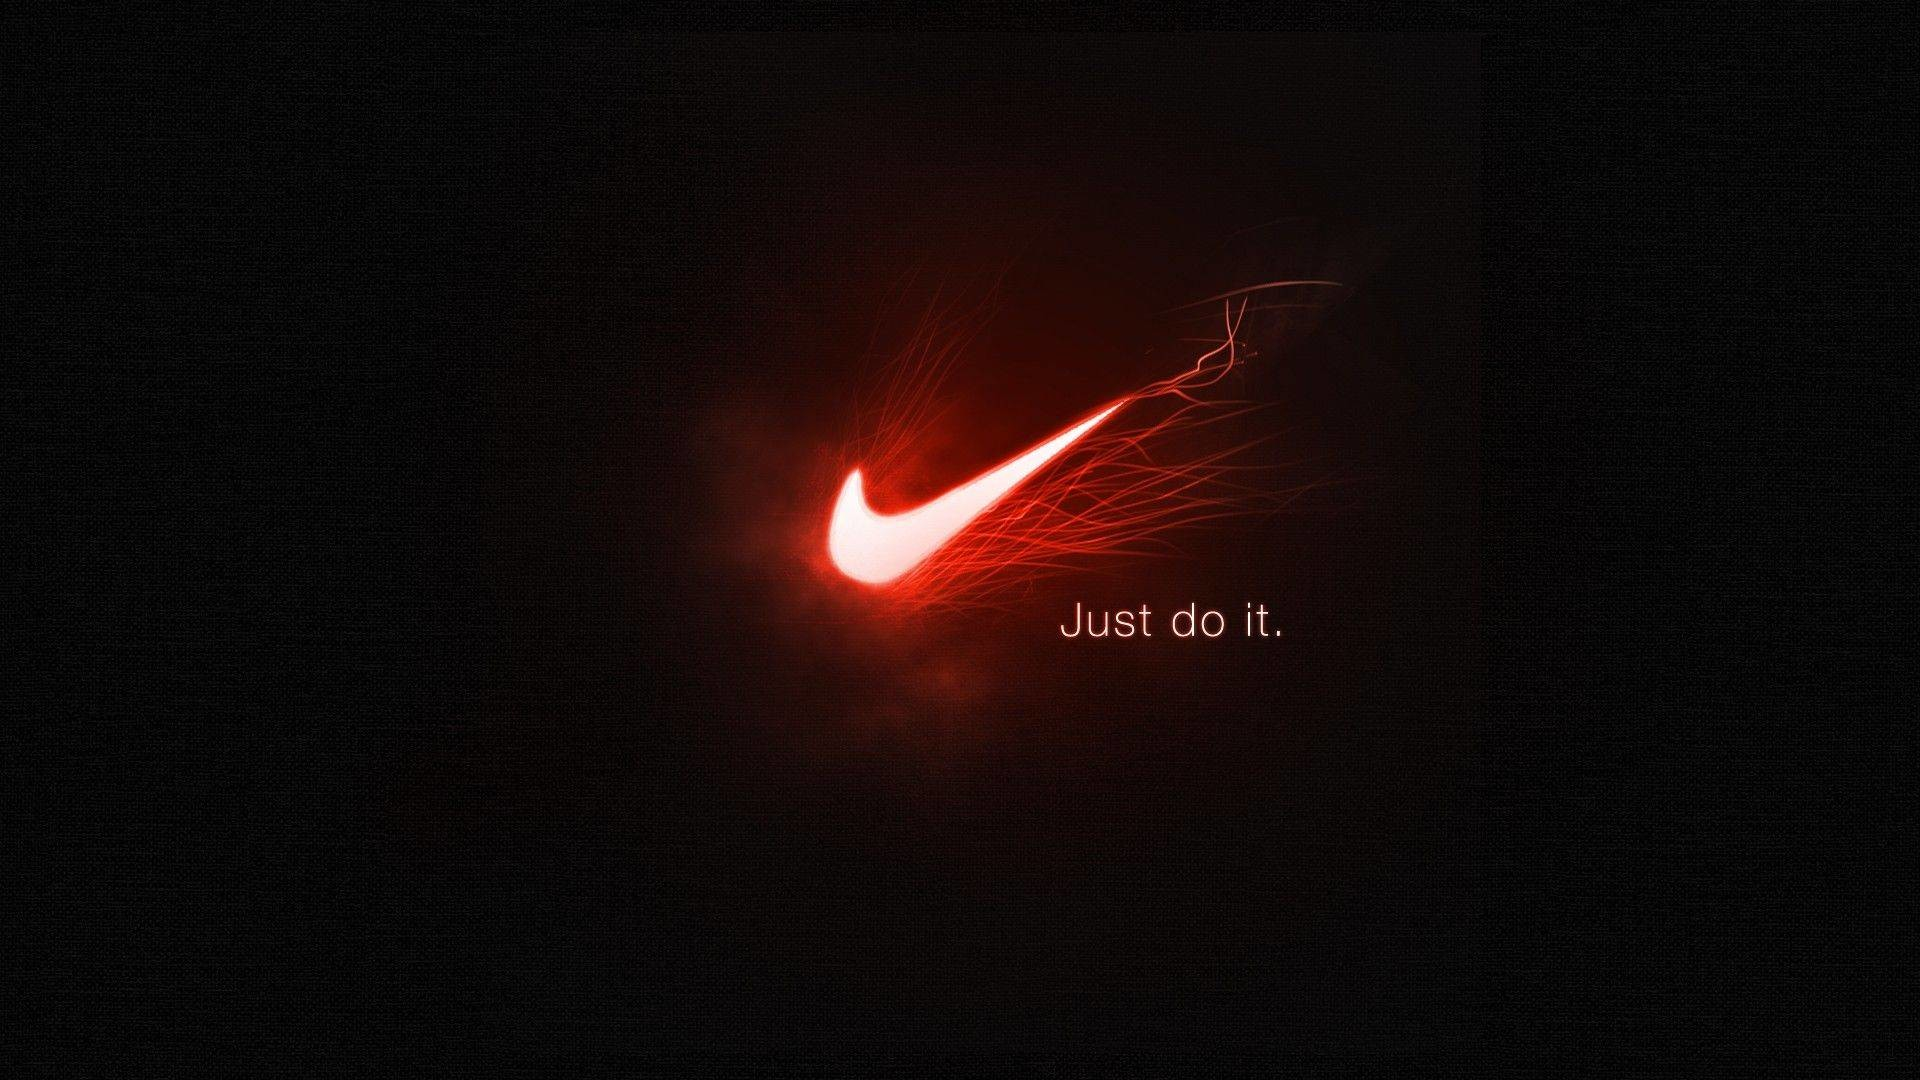 nike quotes wallpaper (67+ images)